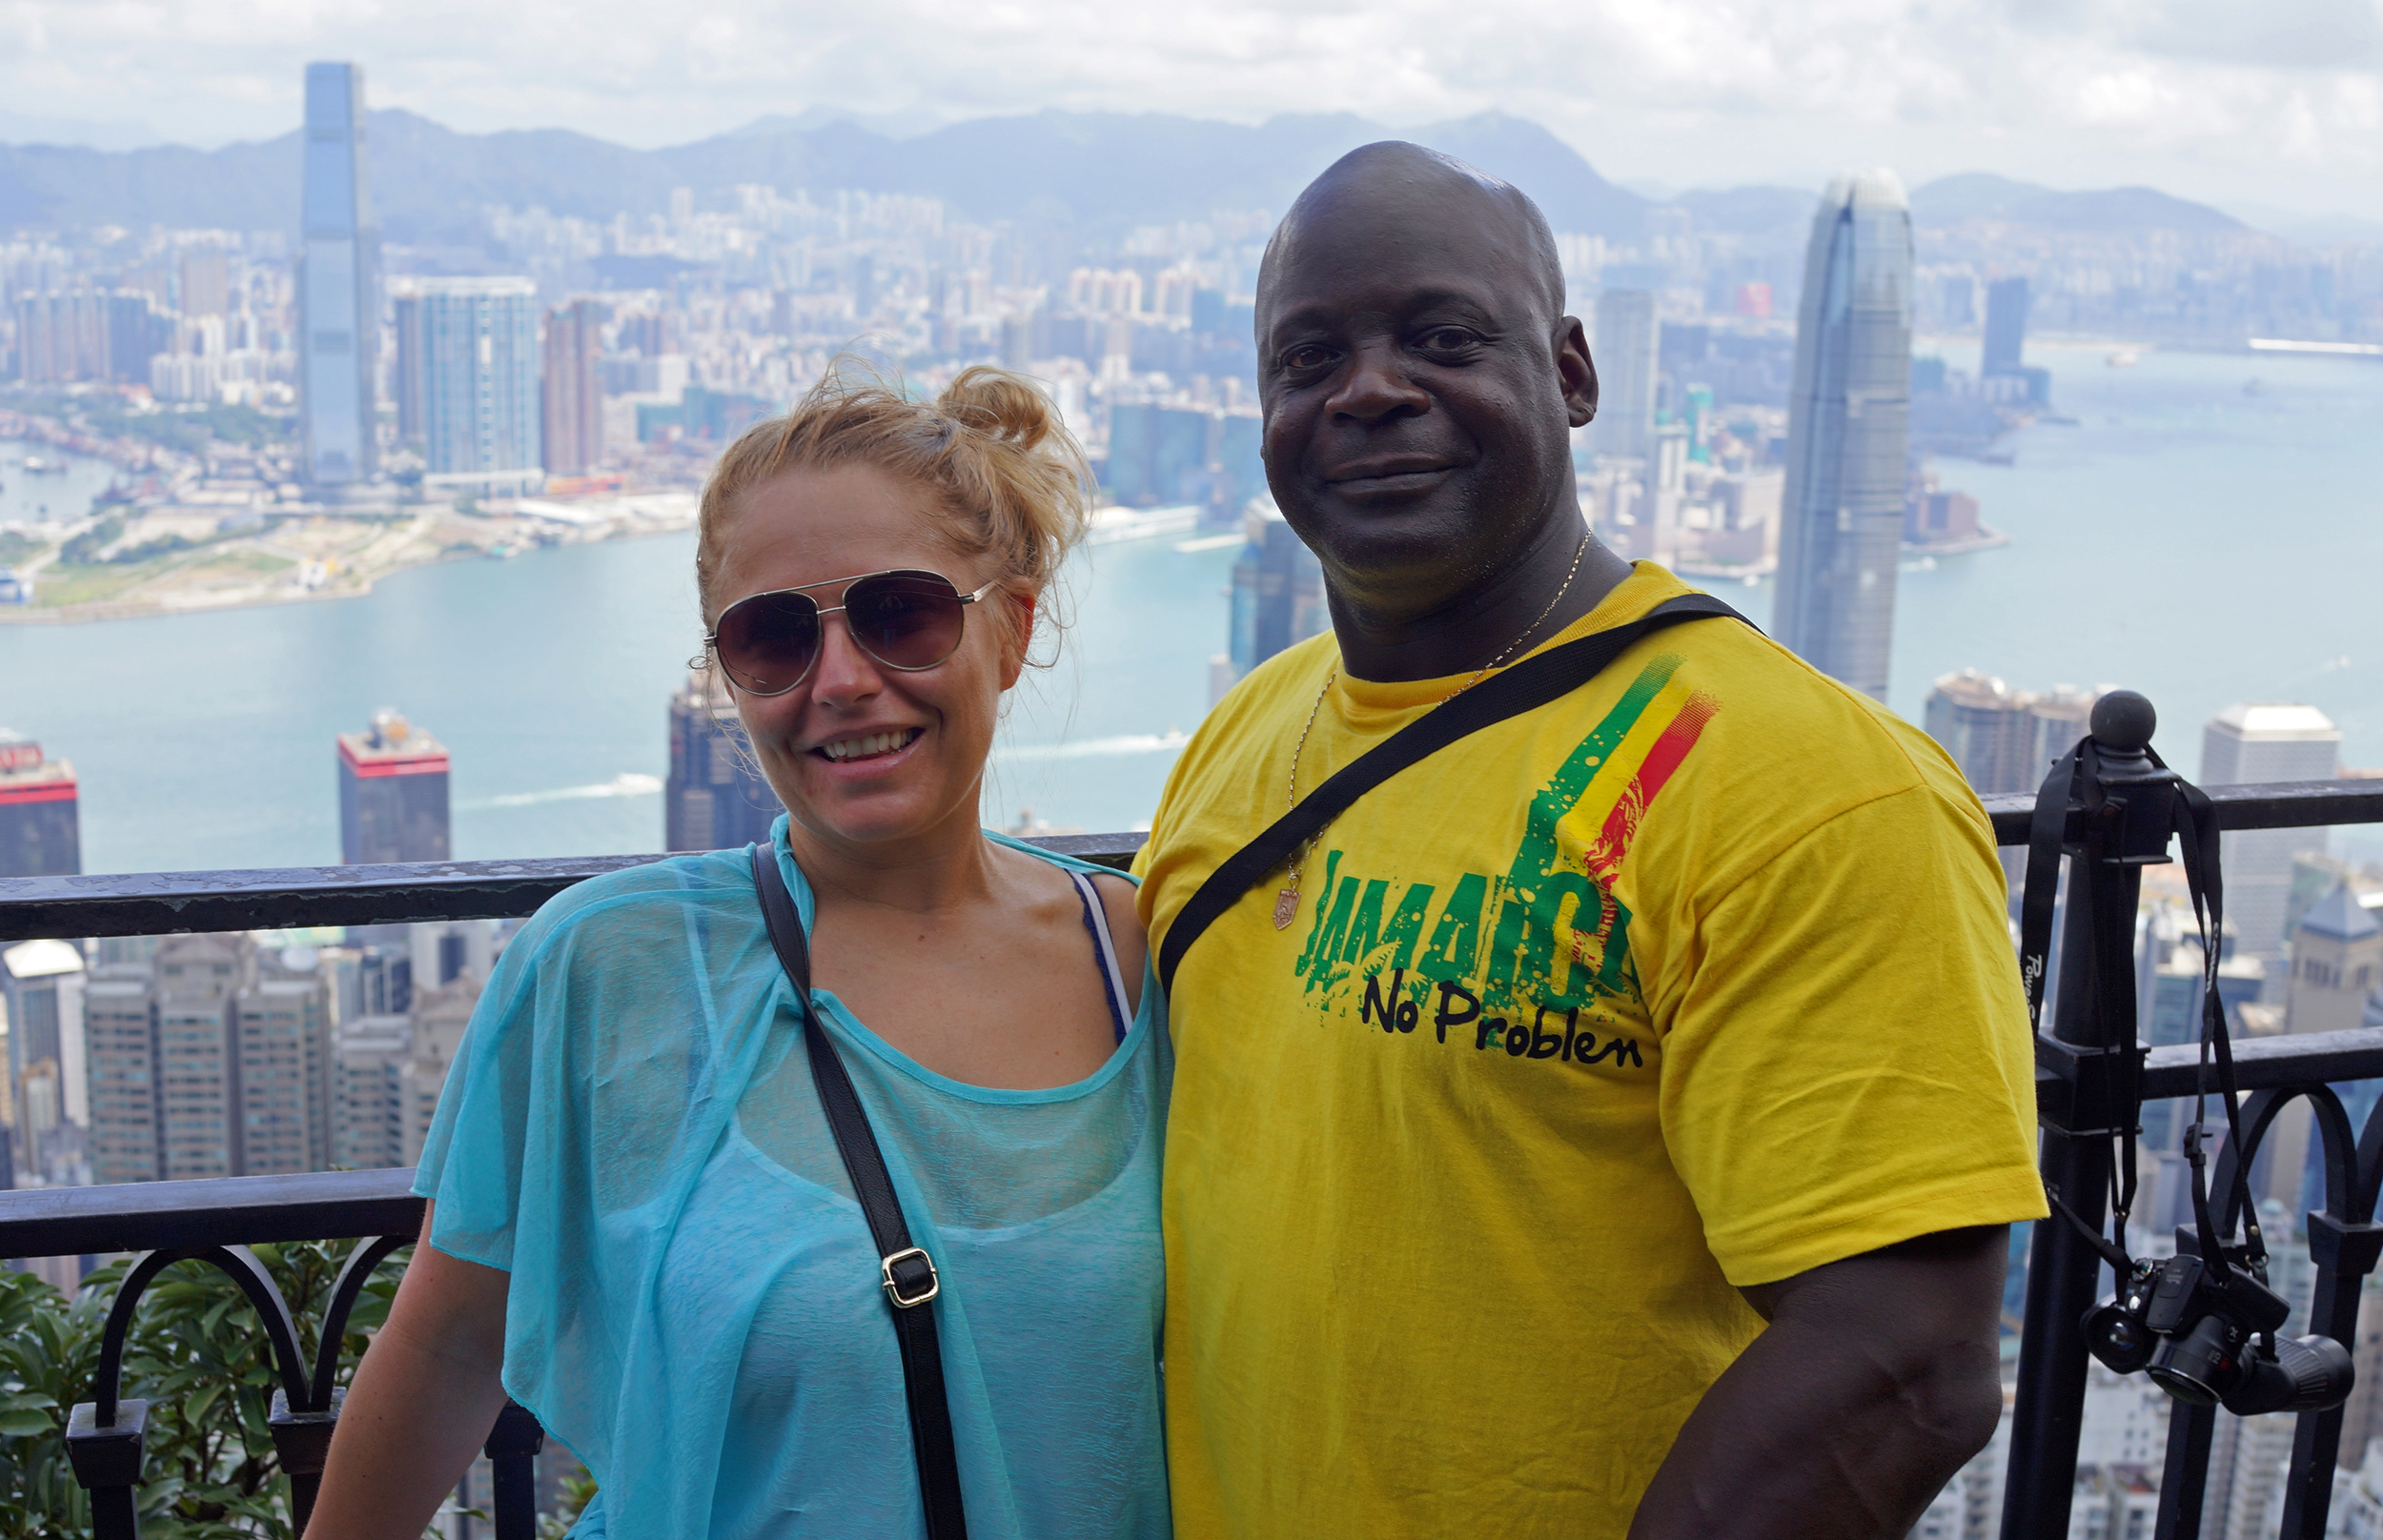 Meet Joanne and Frank from England enjoying their first trip to Hong Kong... as usual the background is my spot at Victoria Peak...